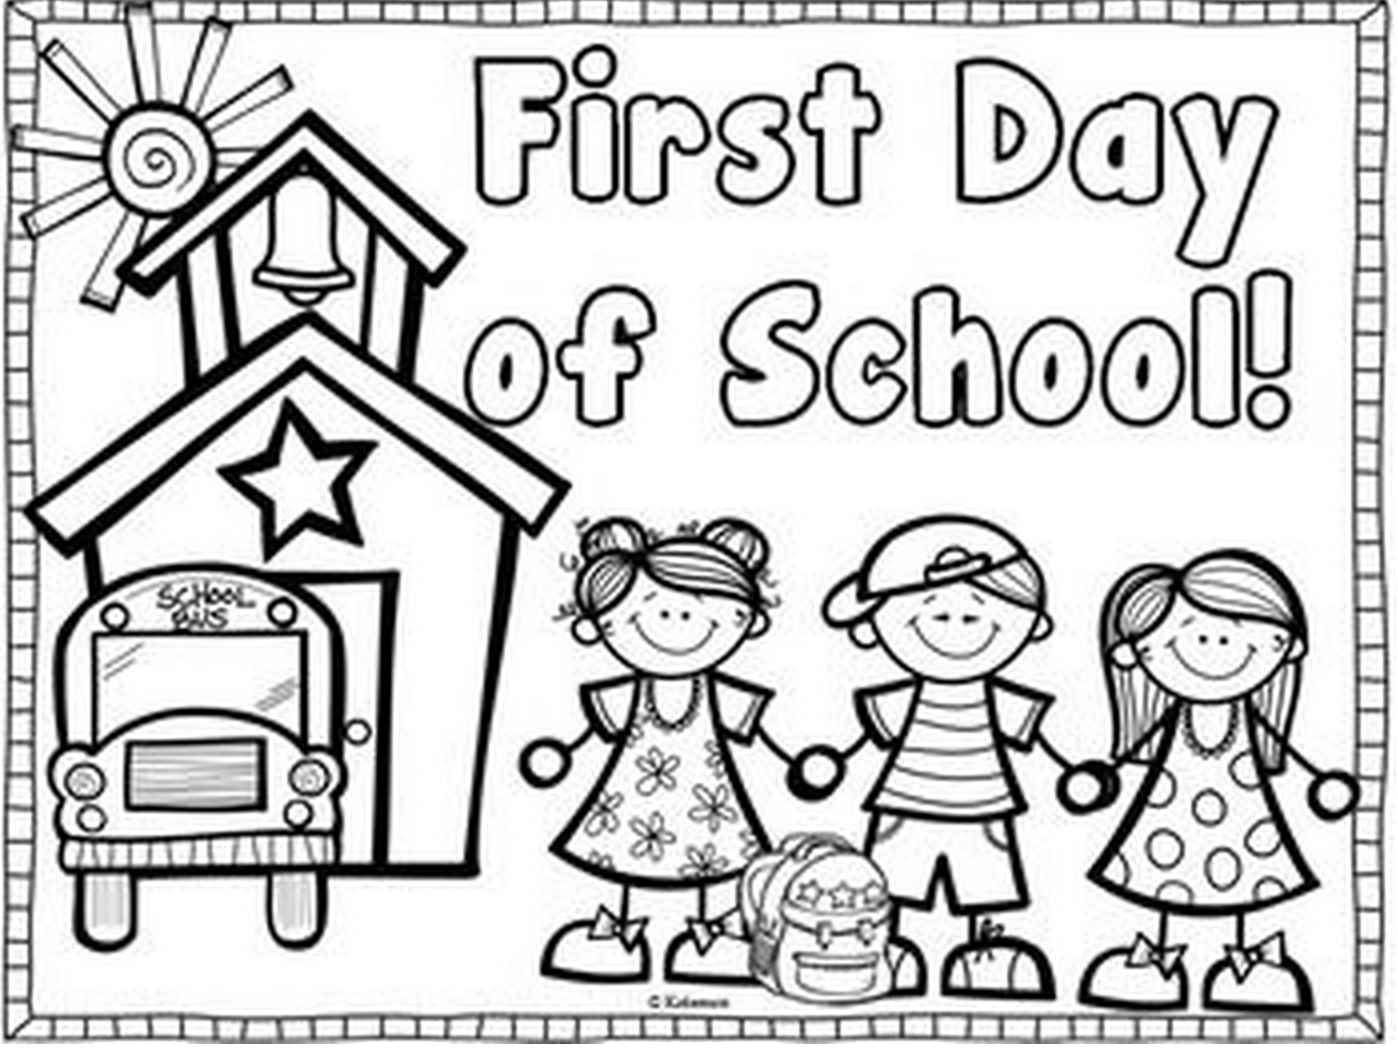 First Day Of School Coloring Page & Book For Kids. - Free Printable First Day Of School Coloring Pages